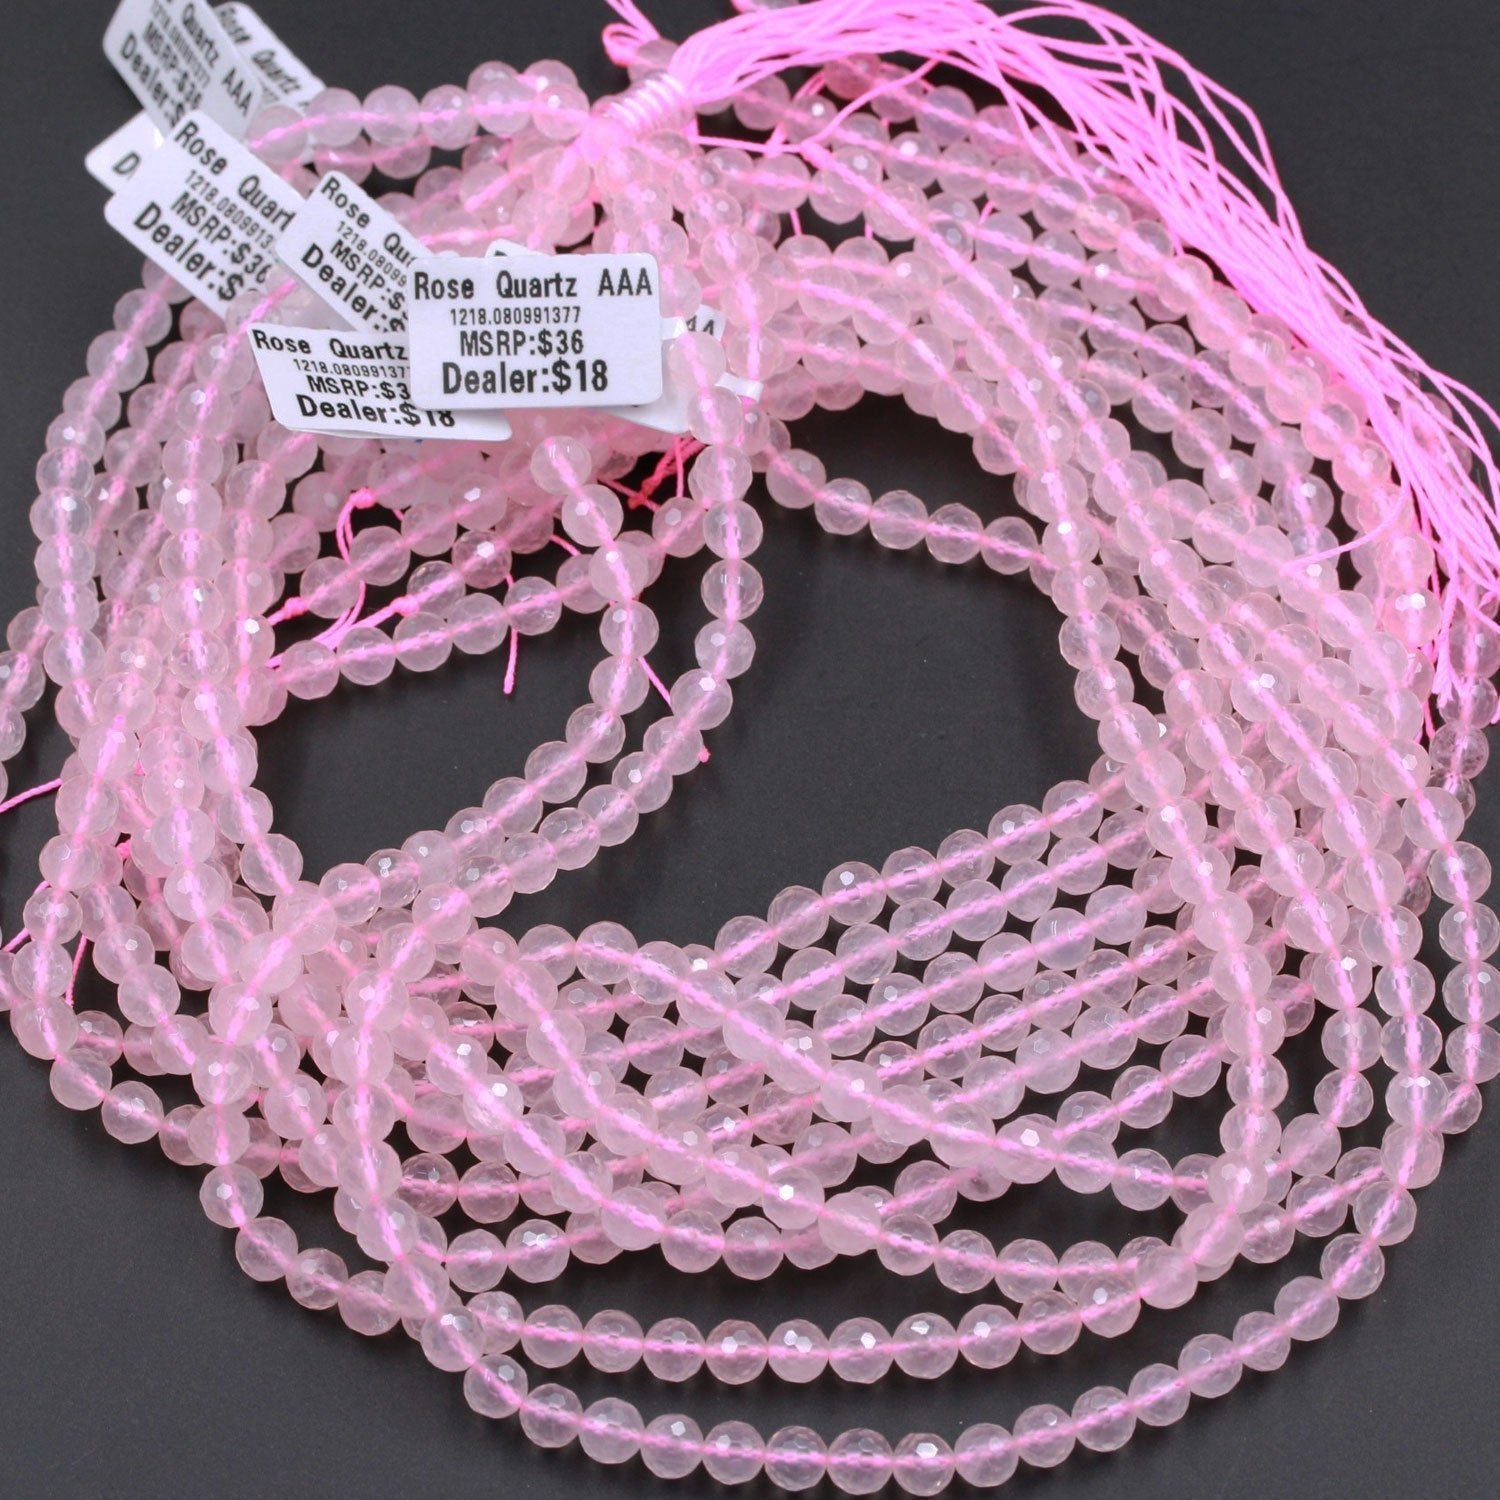 "AAA Micro Faceted Natural Madagascar Pink Rose Quartz 6mm Round Beads Laser Diamond Cut High Quality Natural Pink Gemstone 16"" Strand"